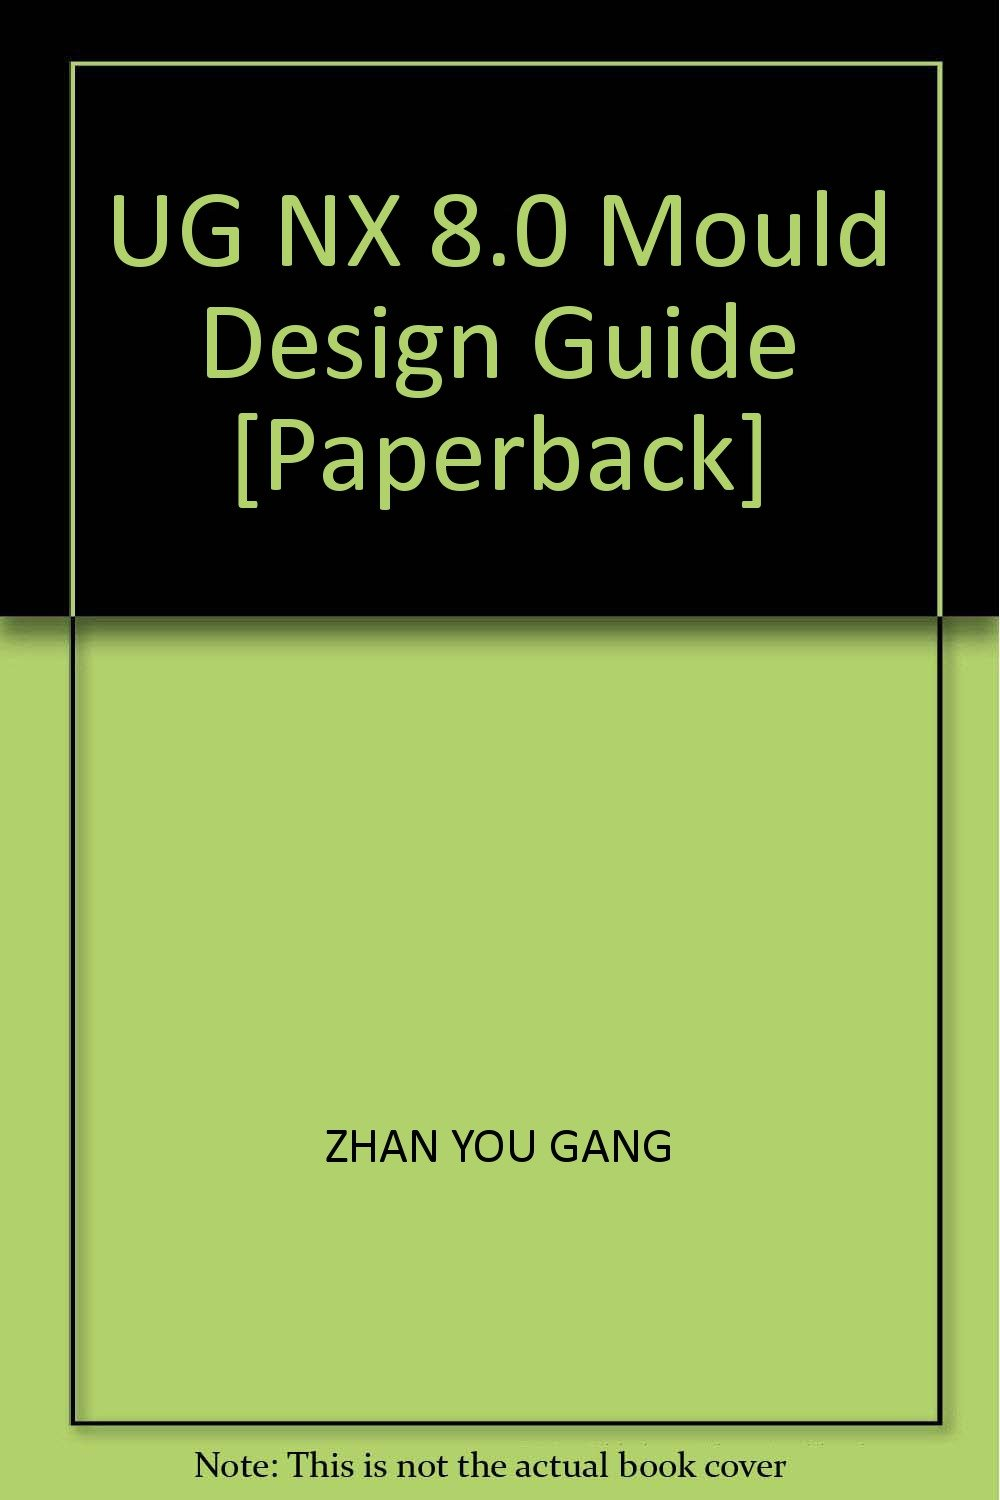 UG NX 8 0 Mould Design Guide [Paperback]: ZHAN YOU GANG